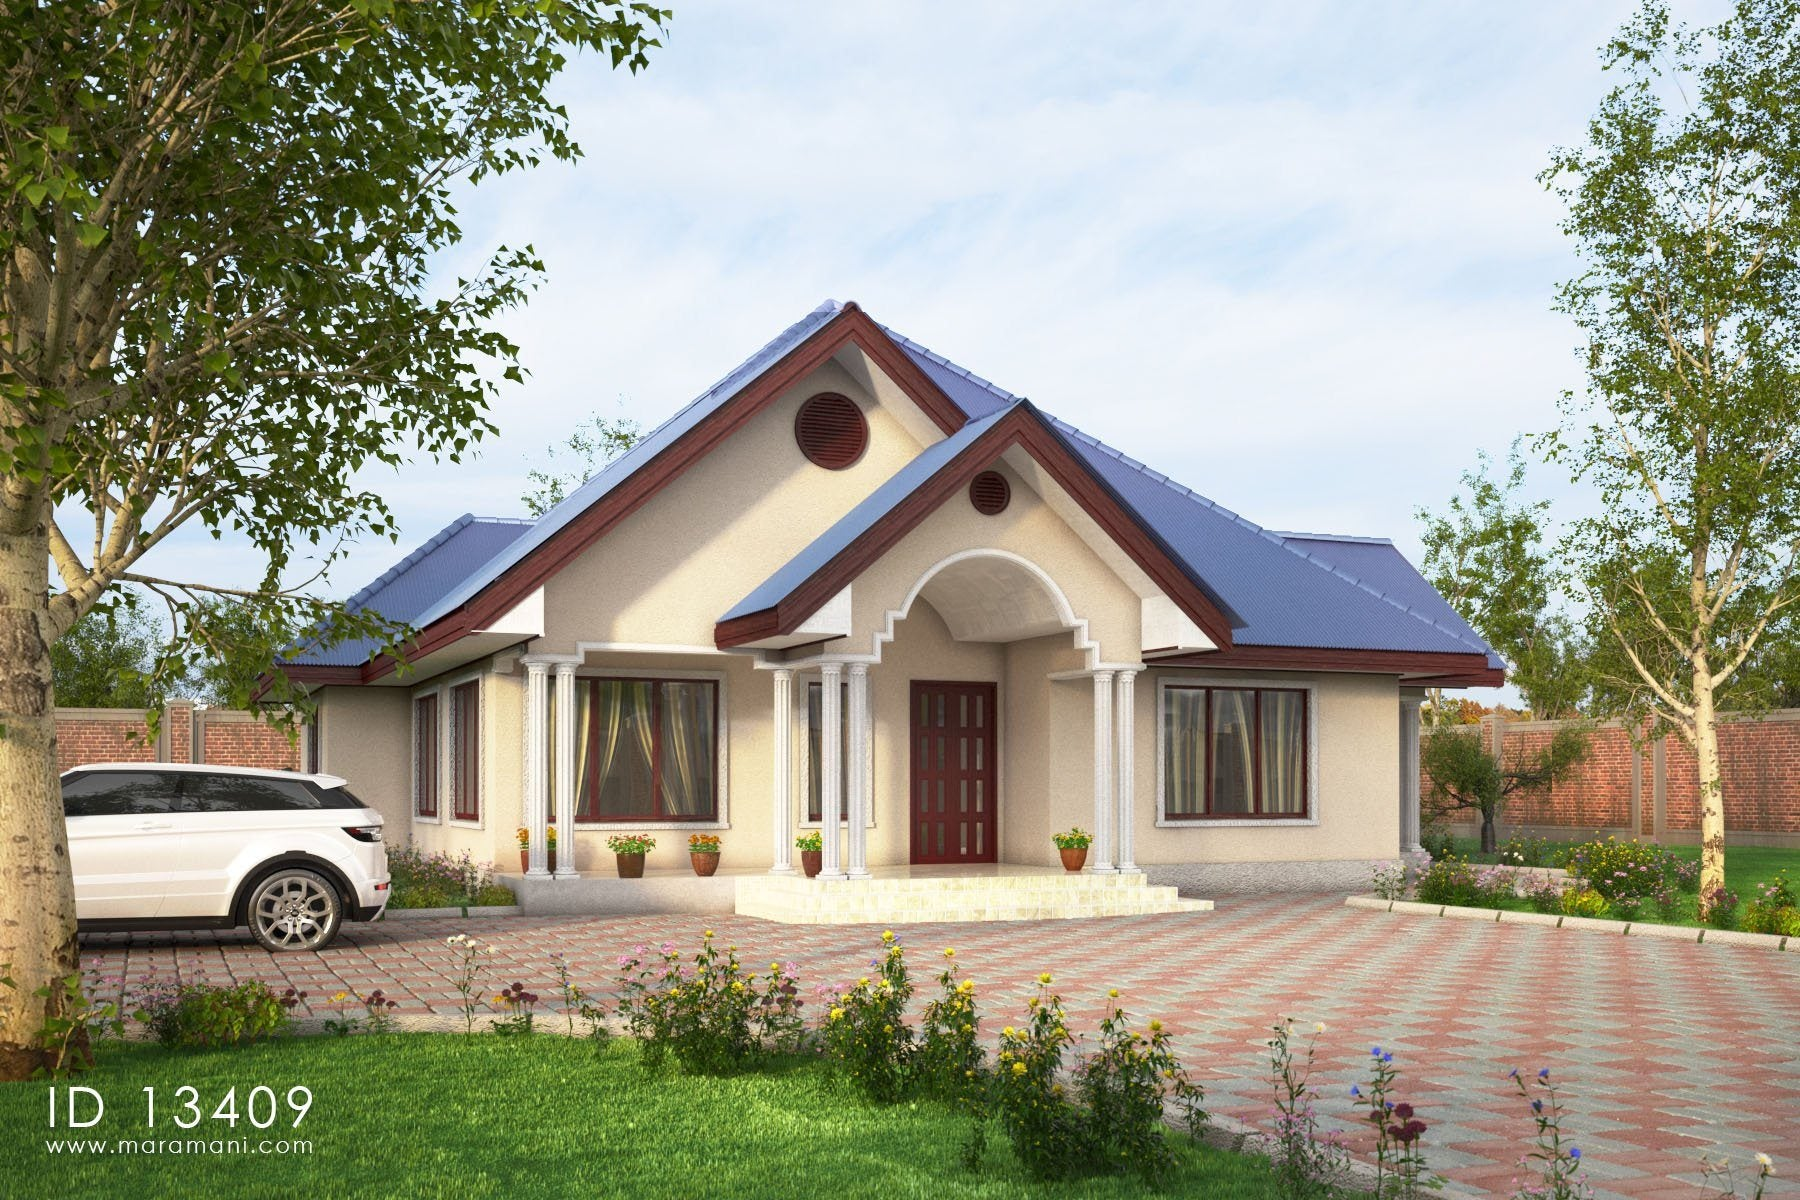 Tanzania house plans with photos id 13409 house designs by maramani